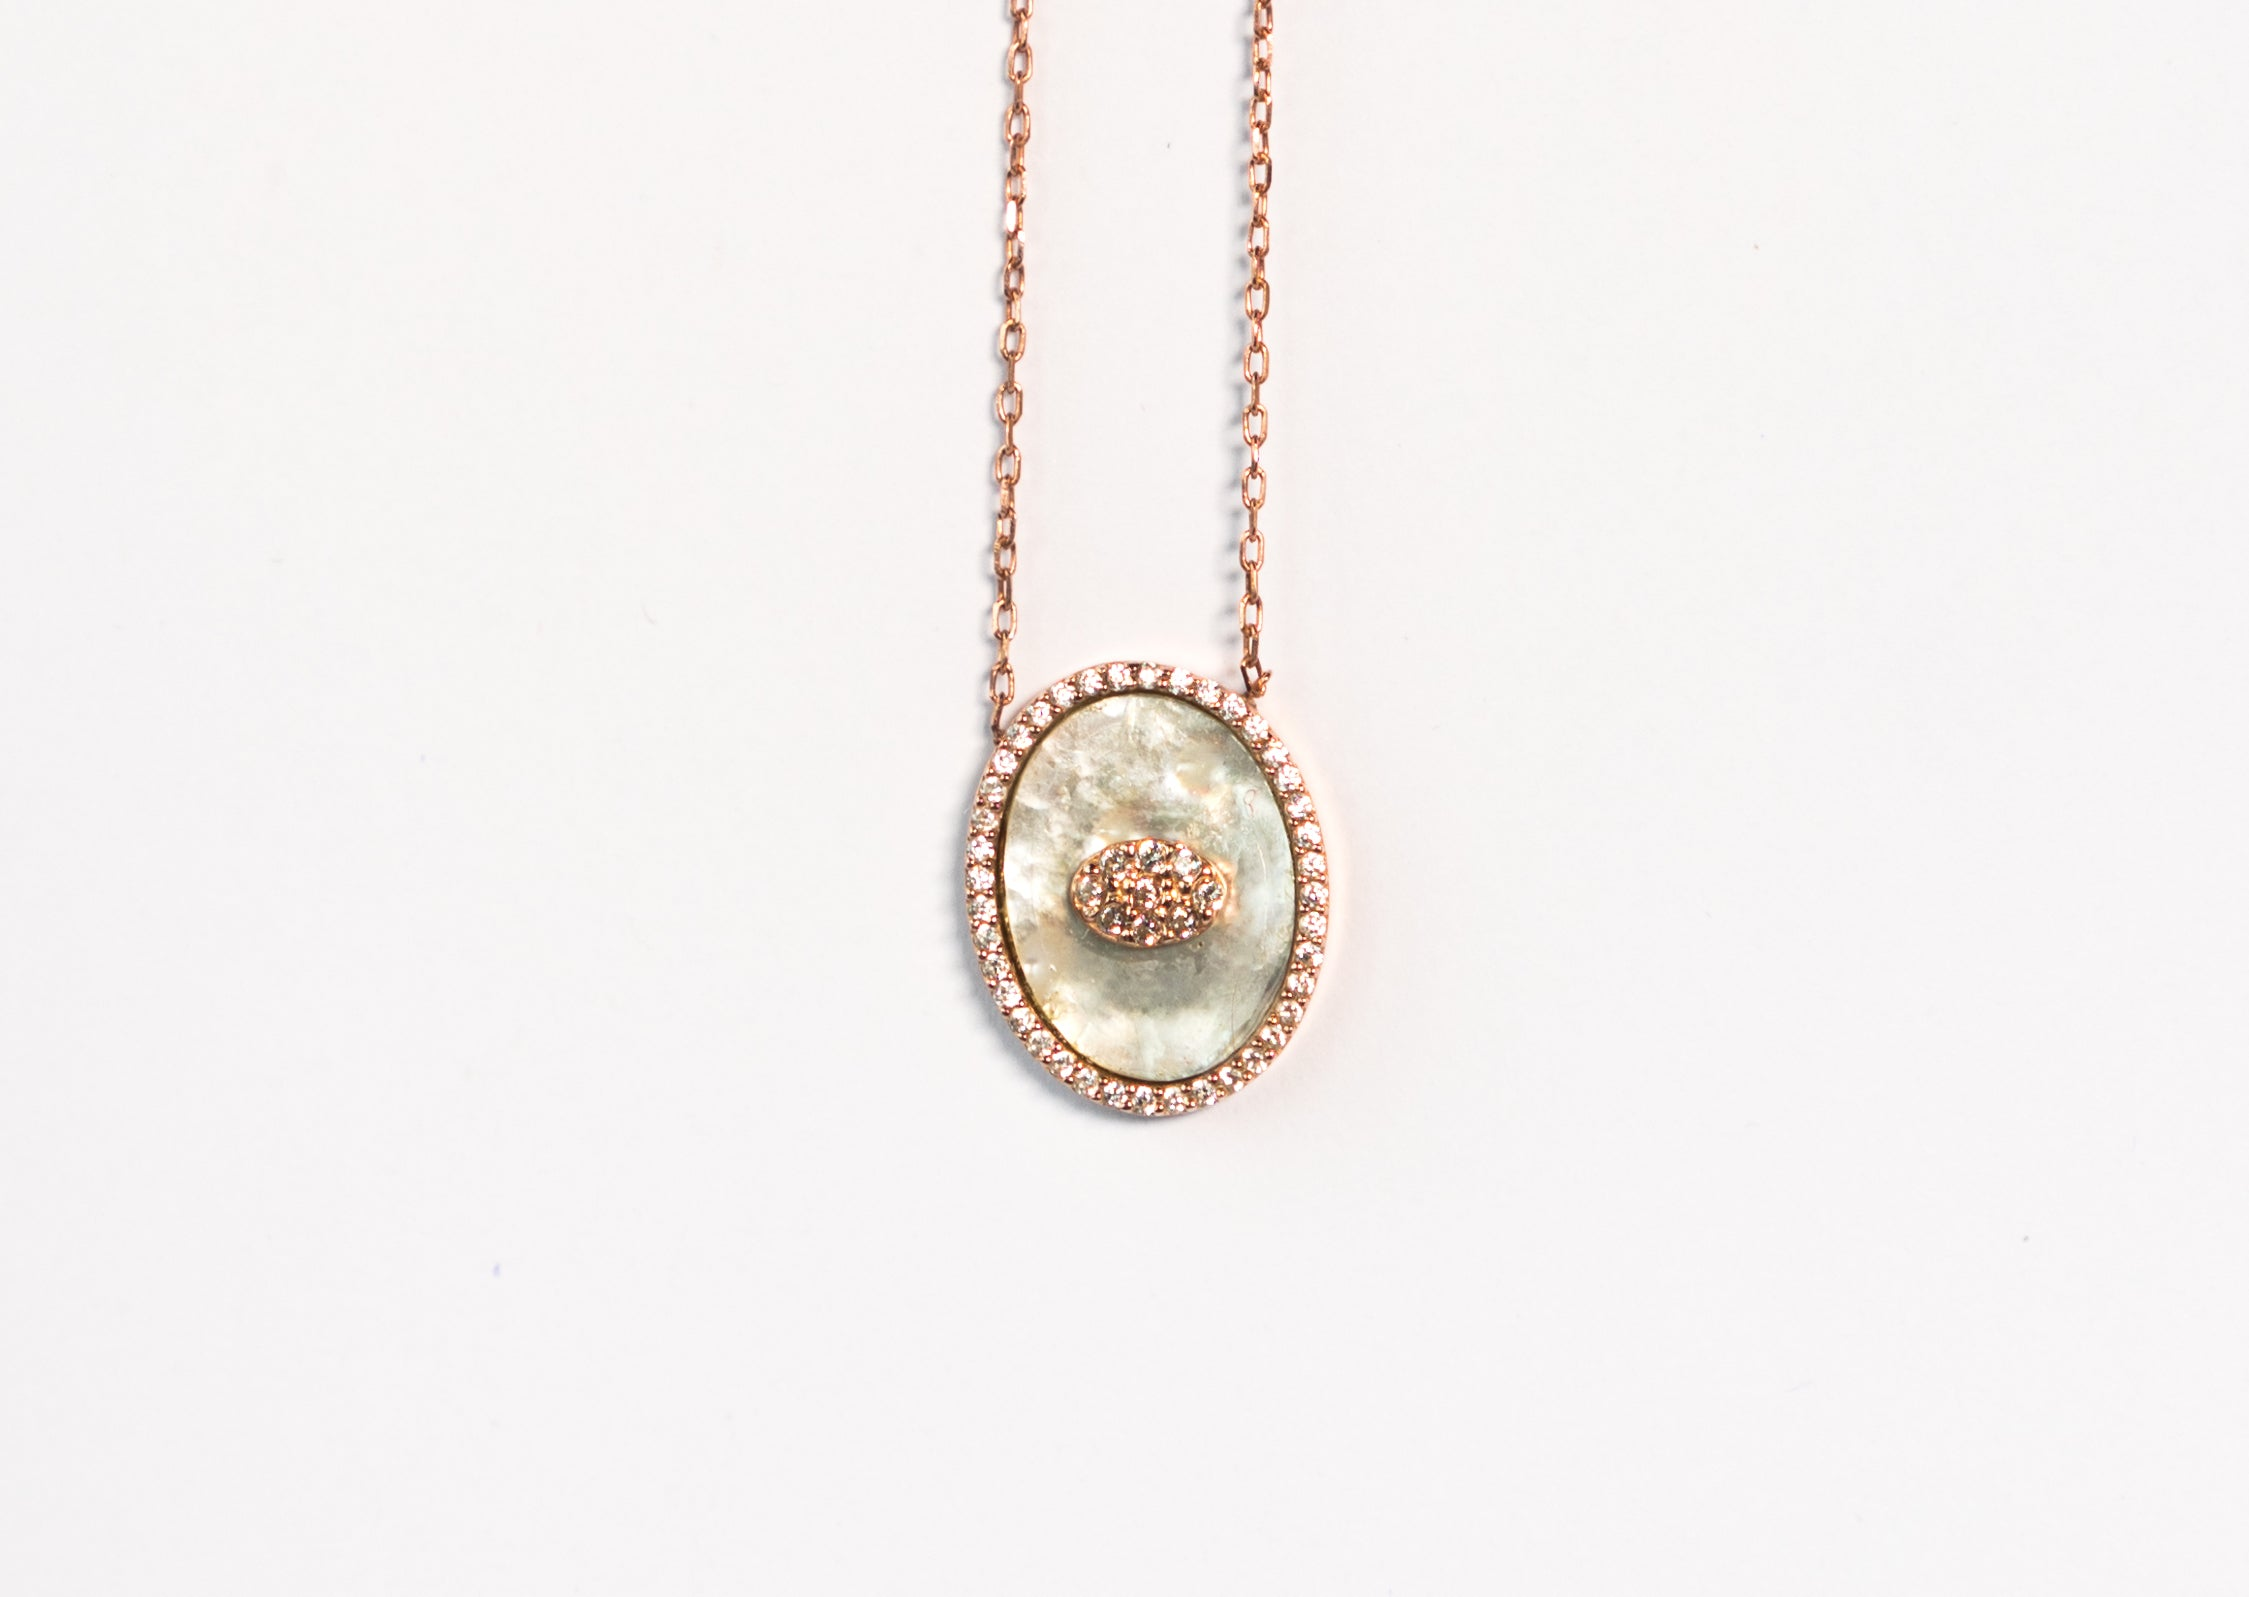 Mother Of Pearl Queen Necklace The Glared